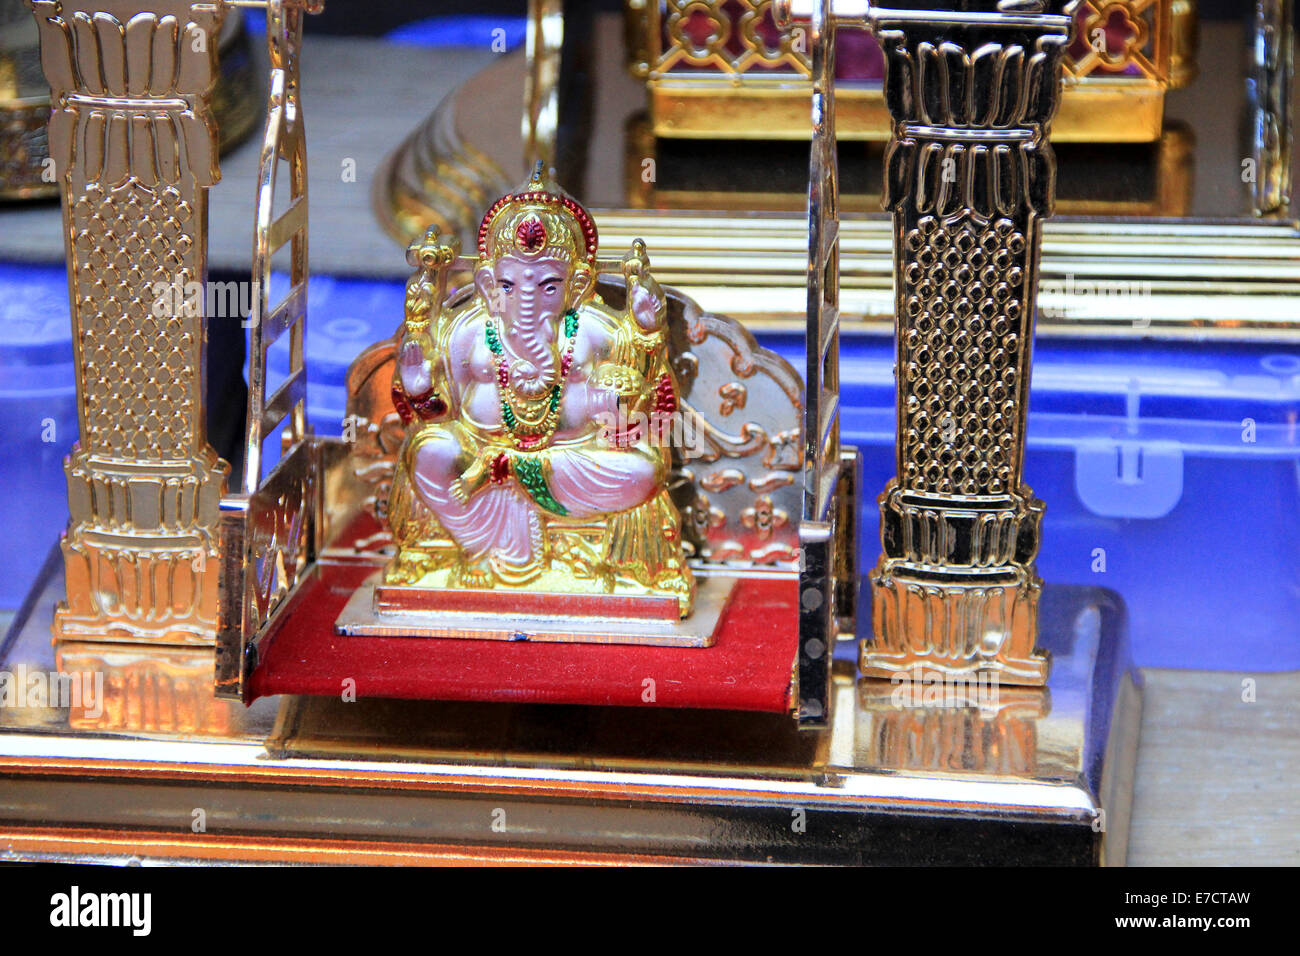 Ganesha on throne platform placed on swing with glittery frame - Stock Image